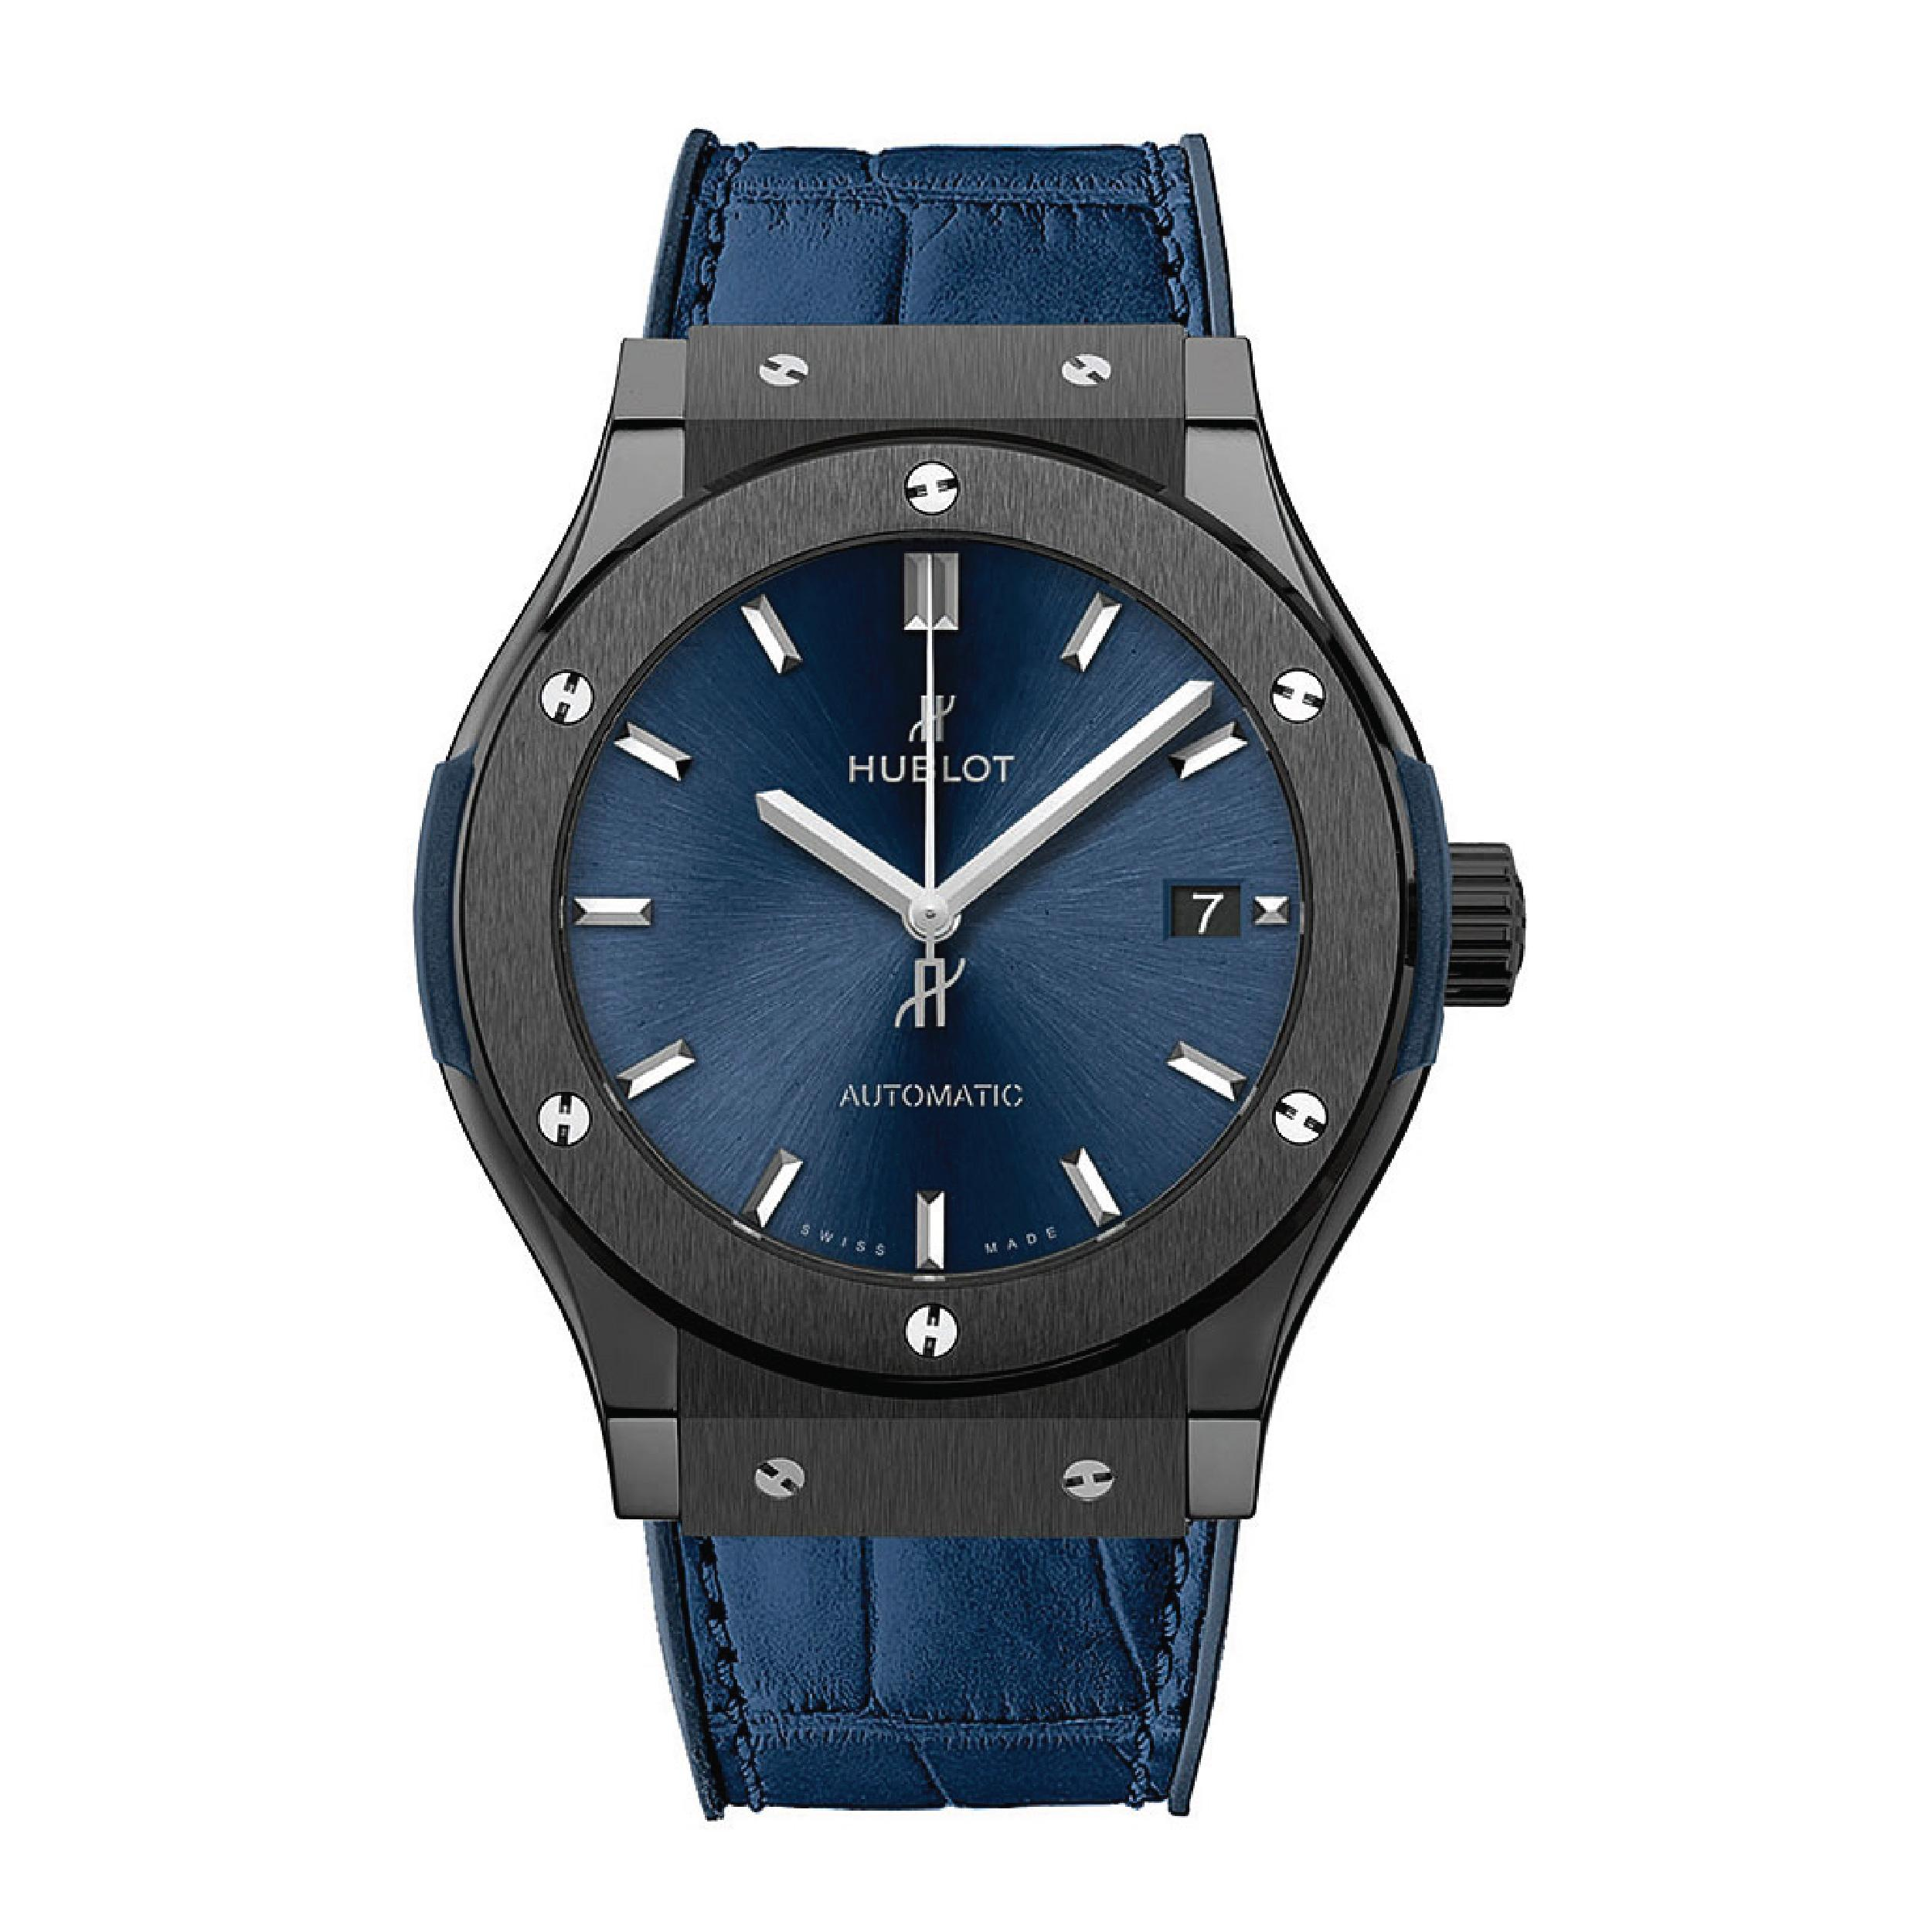 HUBLOT Часы CLASSIC FUSION CERAMIC BLUE 45 mm